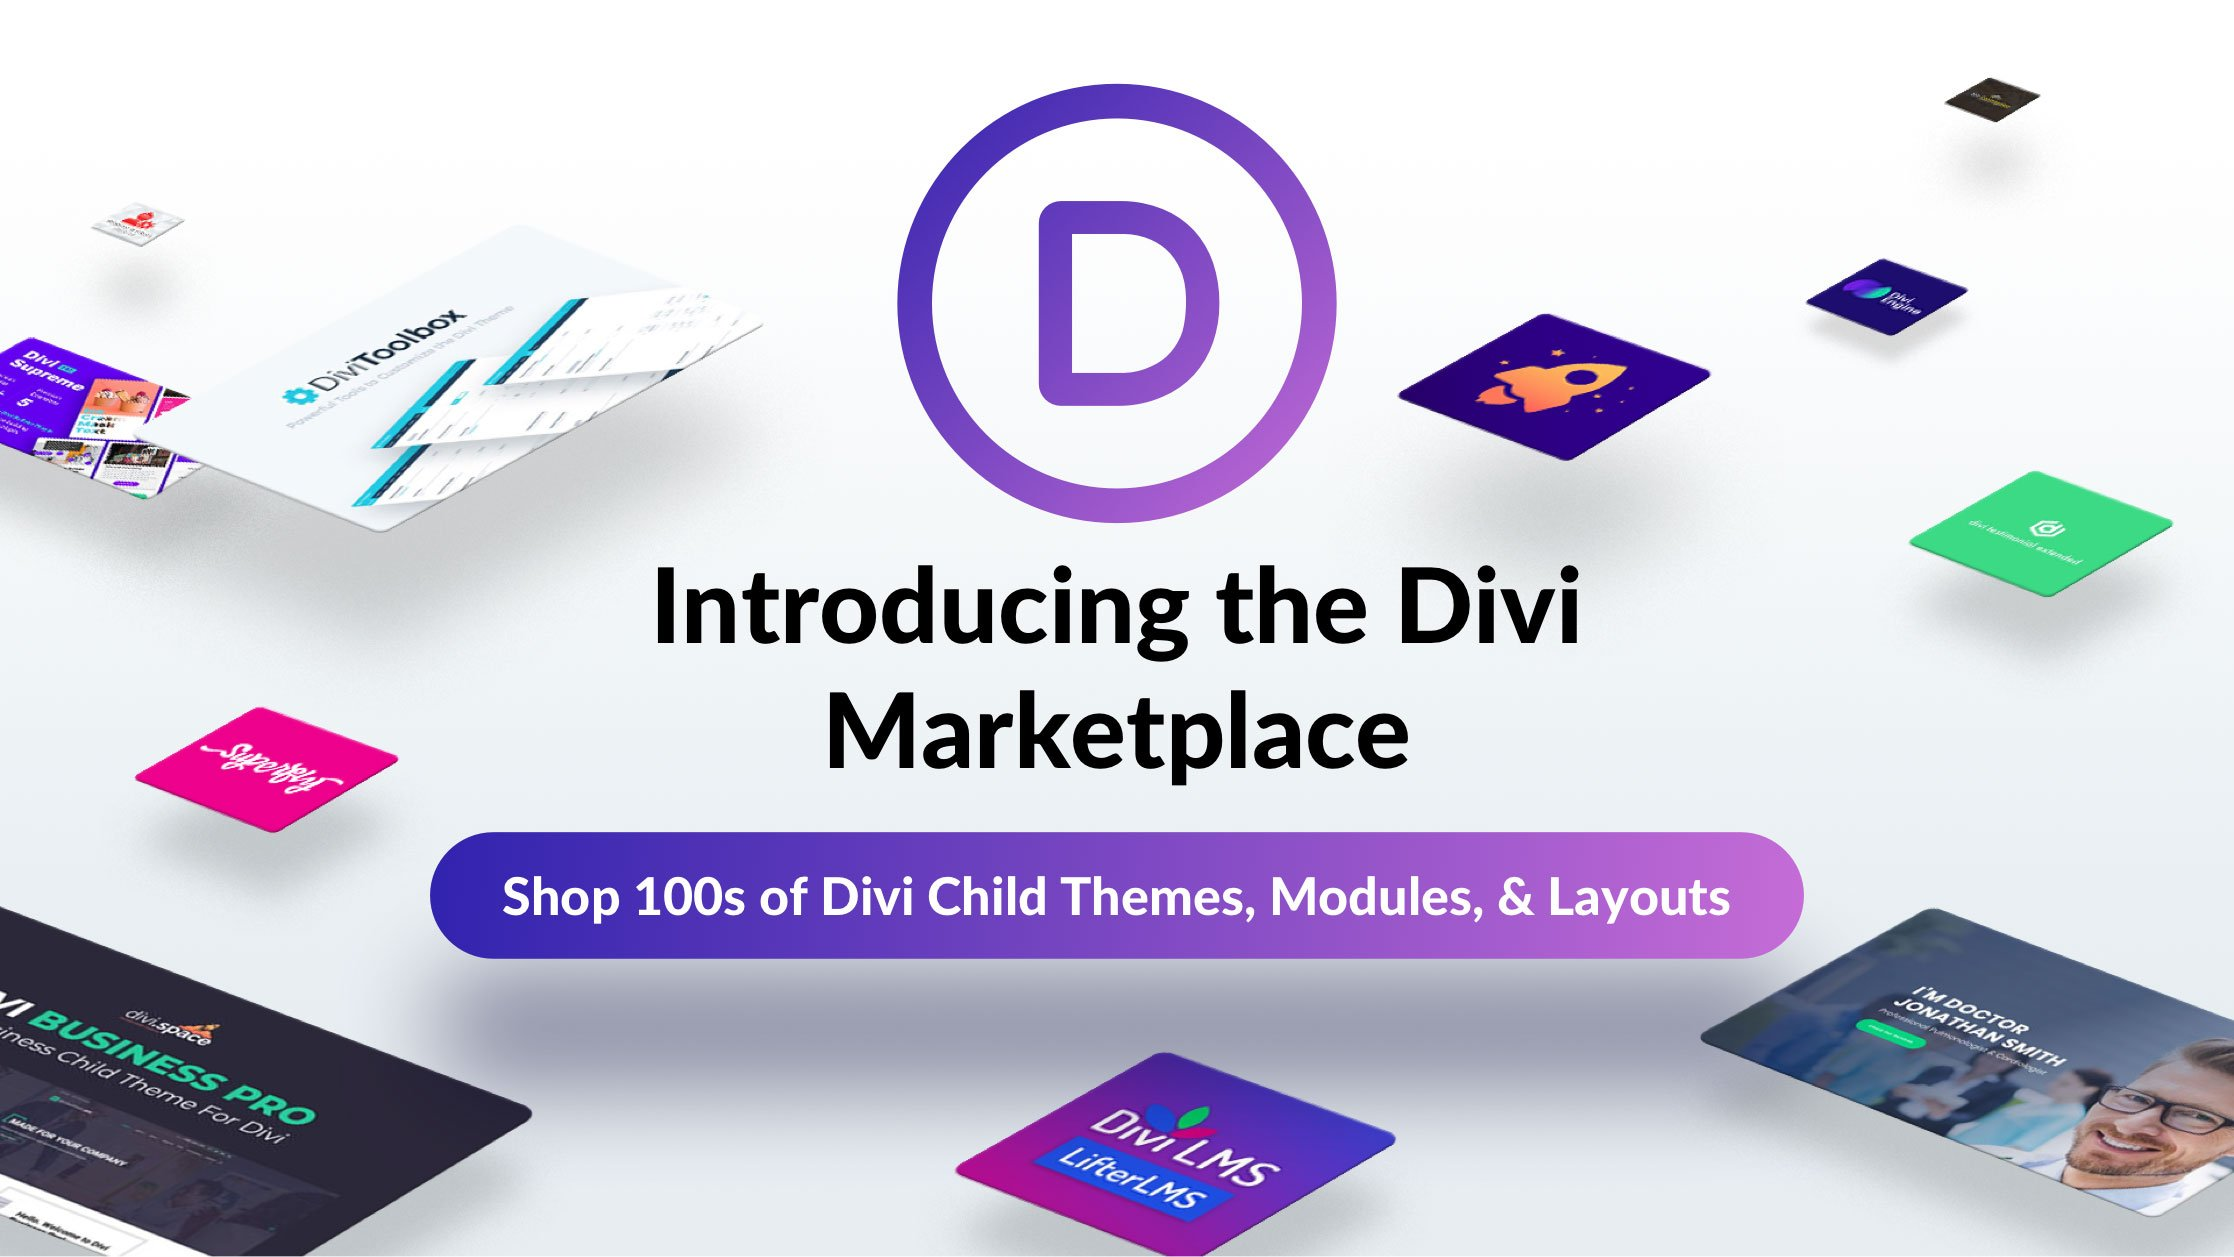 Introducing The Divi Marketplace